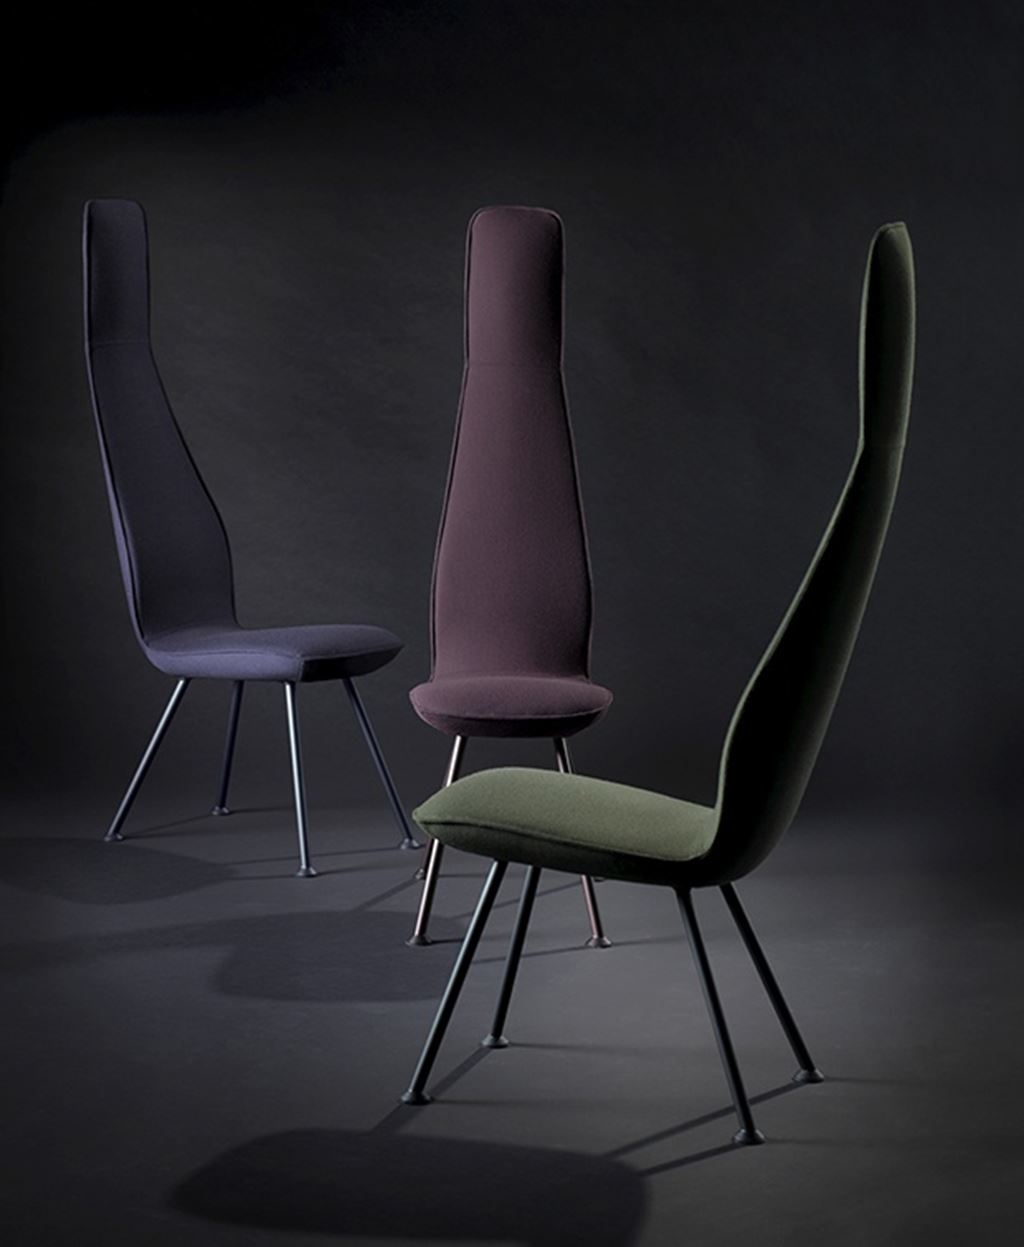 Poppe chair is very narrow with a high chair back